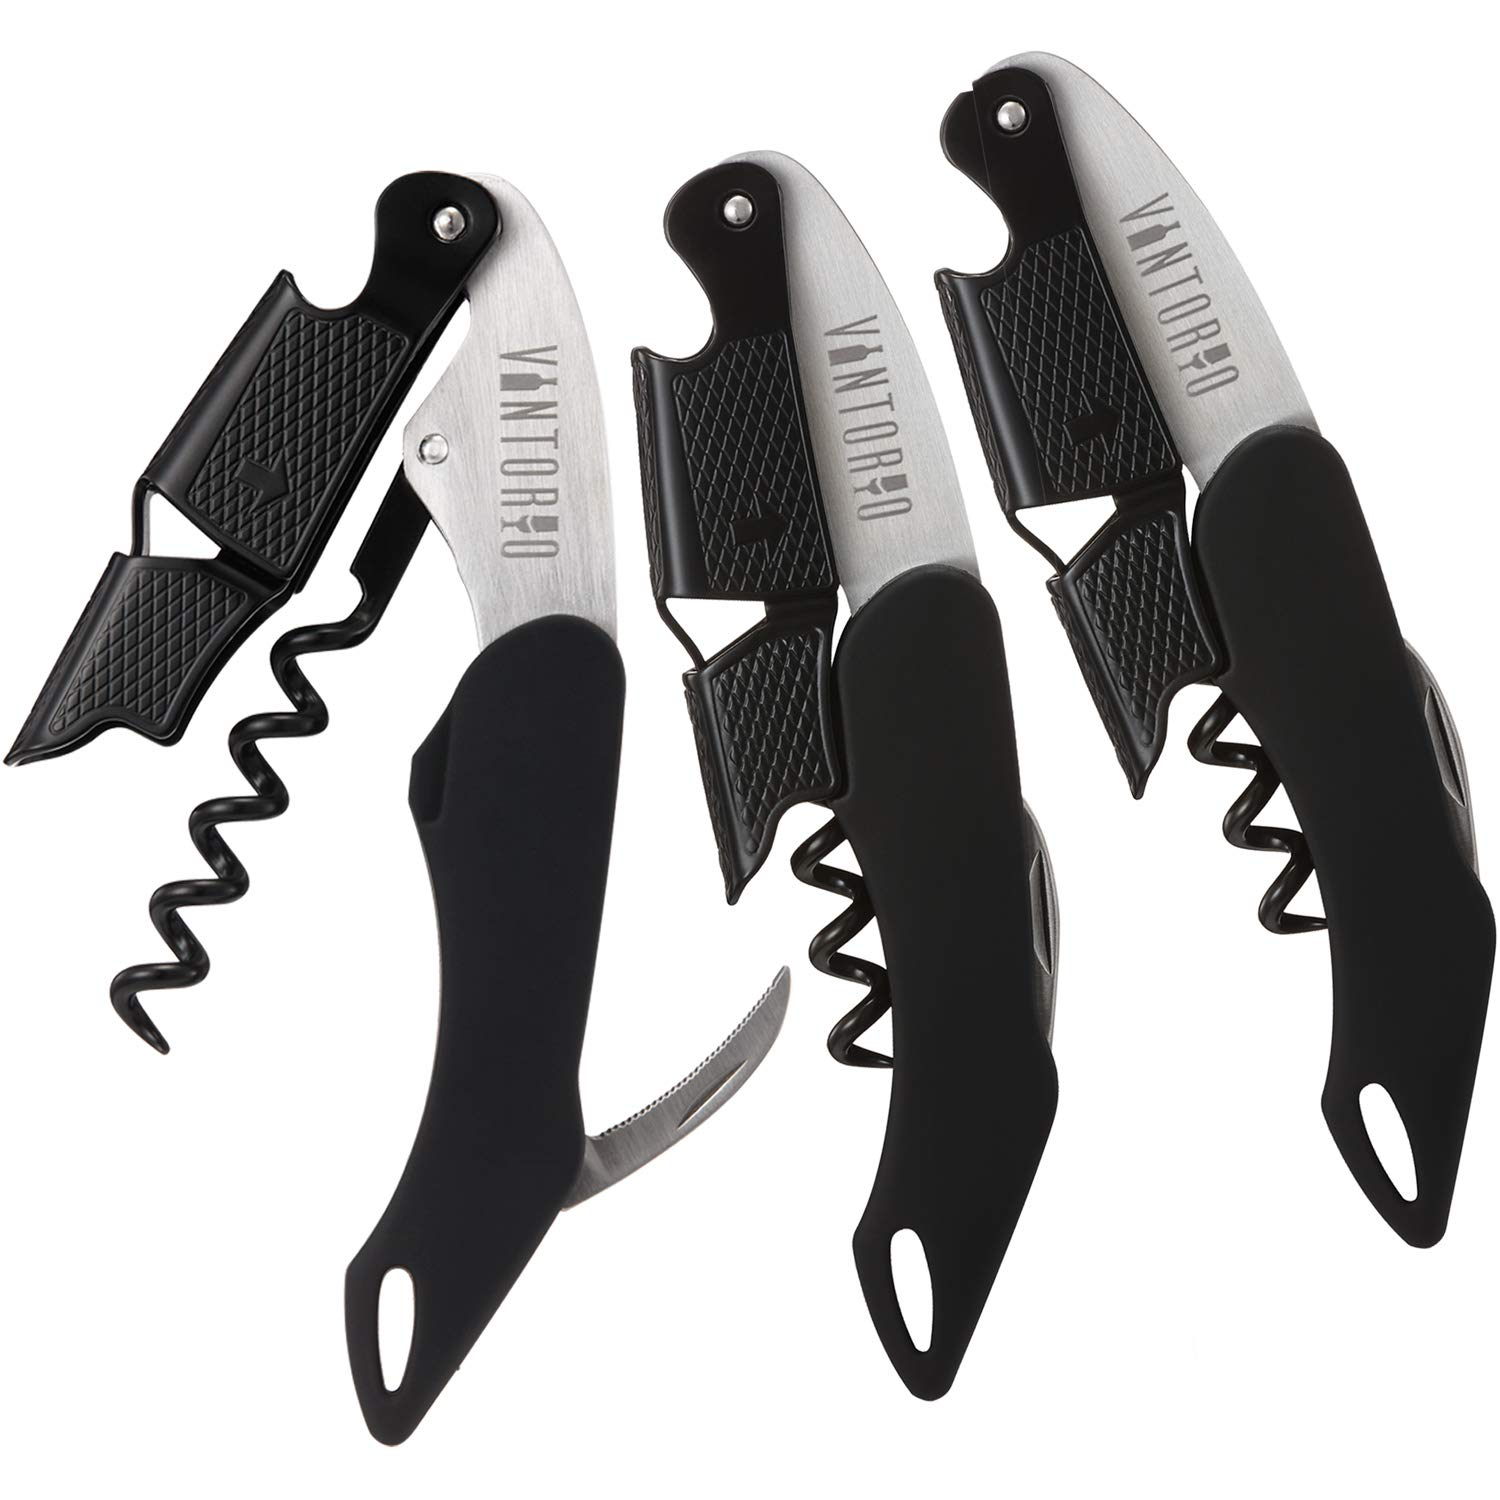 Vintorio Professional Waiters Corkscrew - Wine Key with Ergonomic Rubber Grip, Beer Bottle Opener and Foil Cutter (3 Pack)